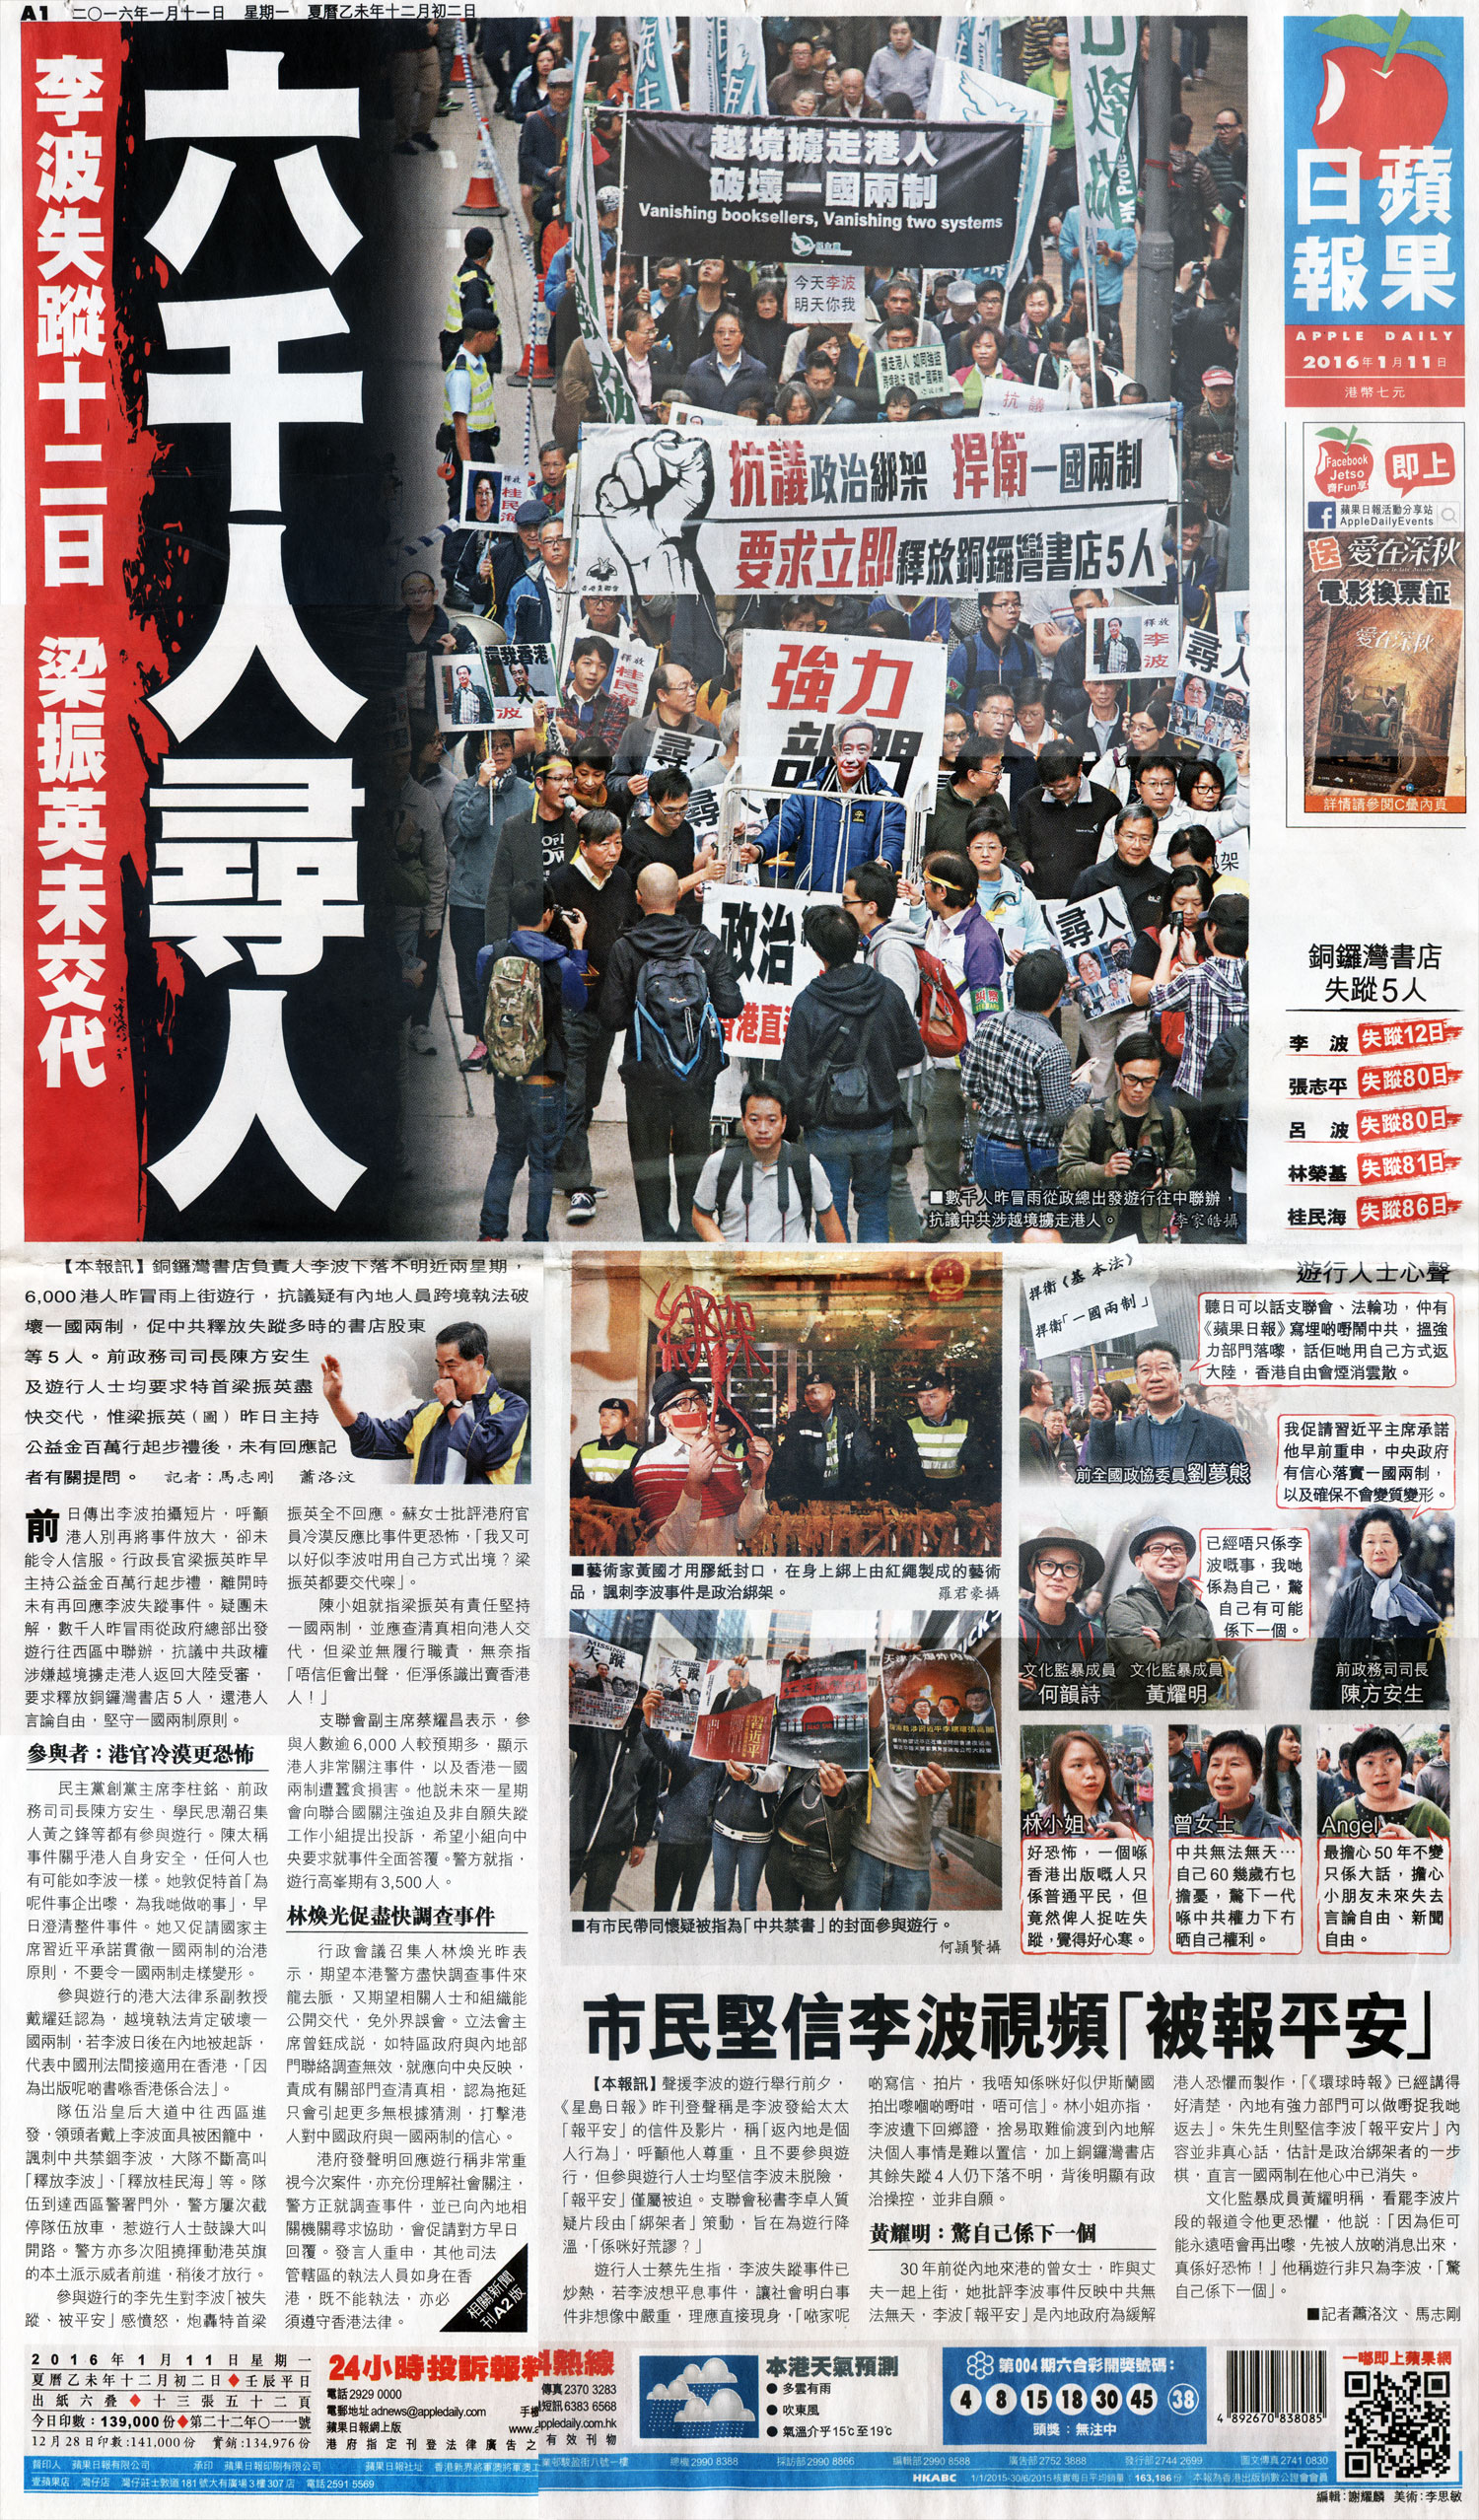 Jan/11/2016 Apple Daily  6000 protesters in search of the missing